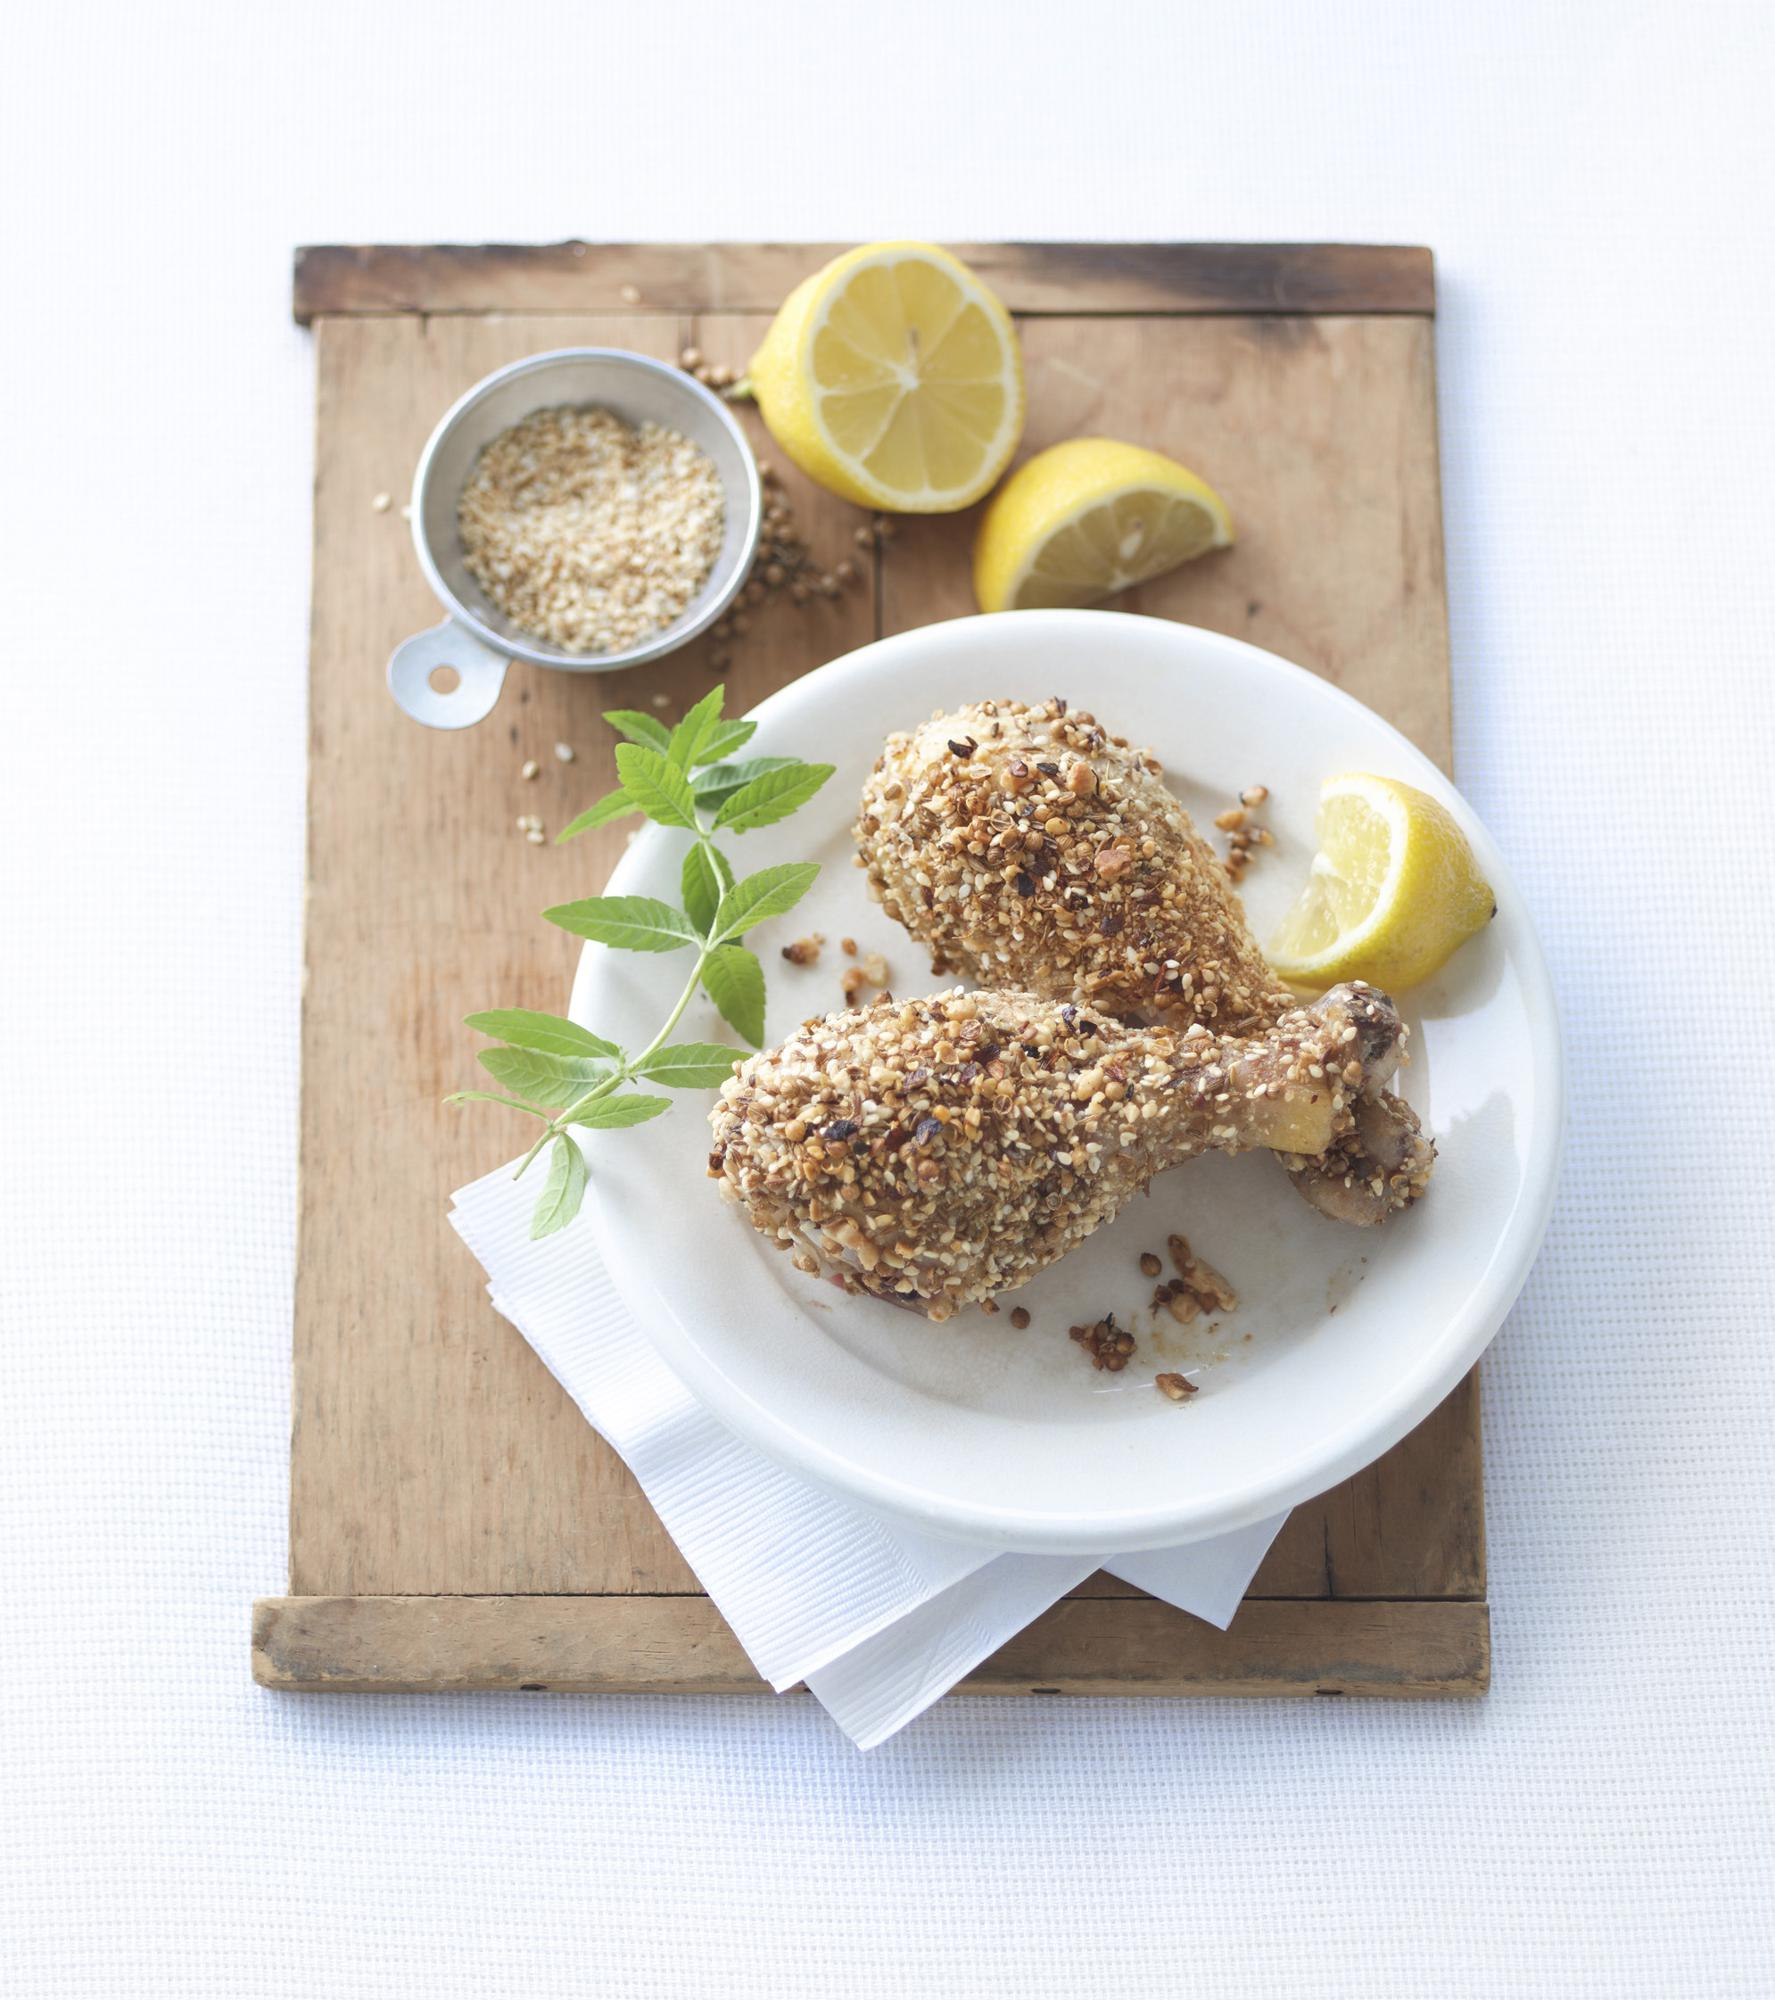 Dukkah-Crusted Roasted Drumsticks